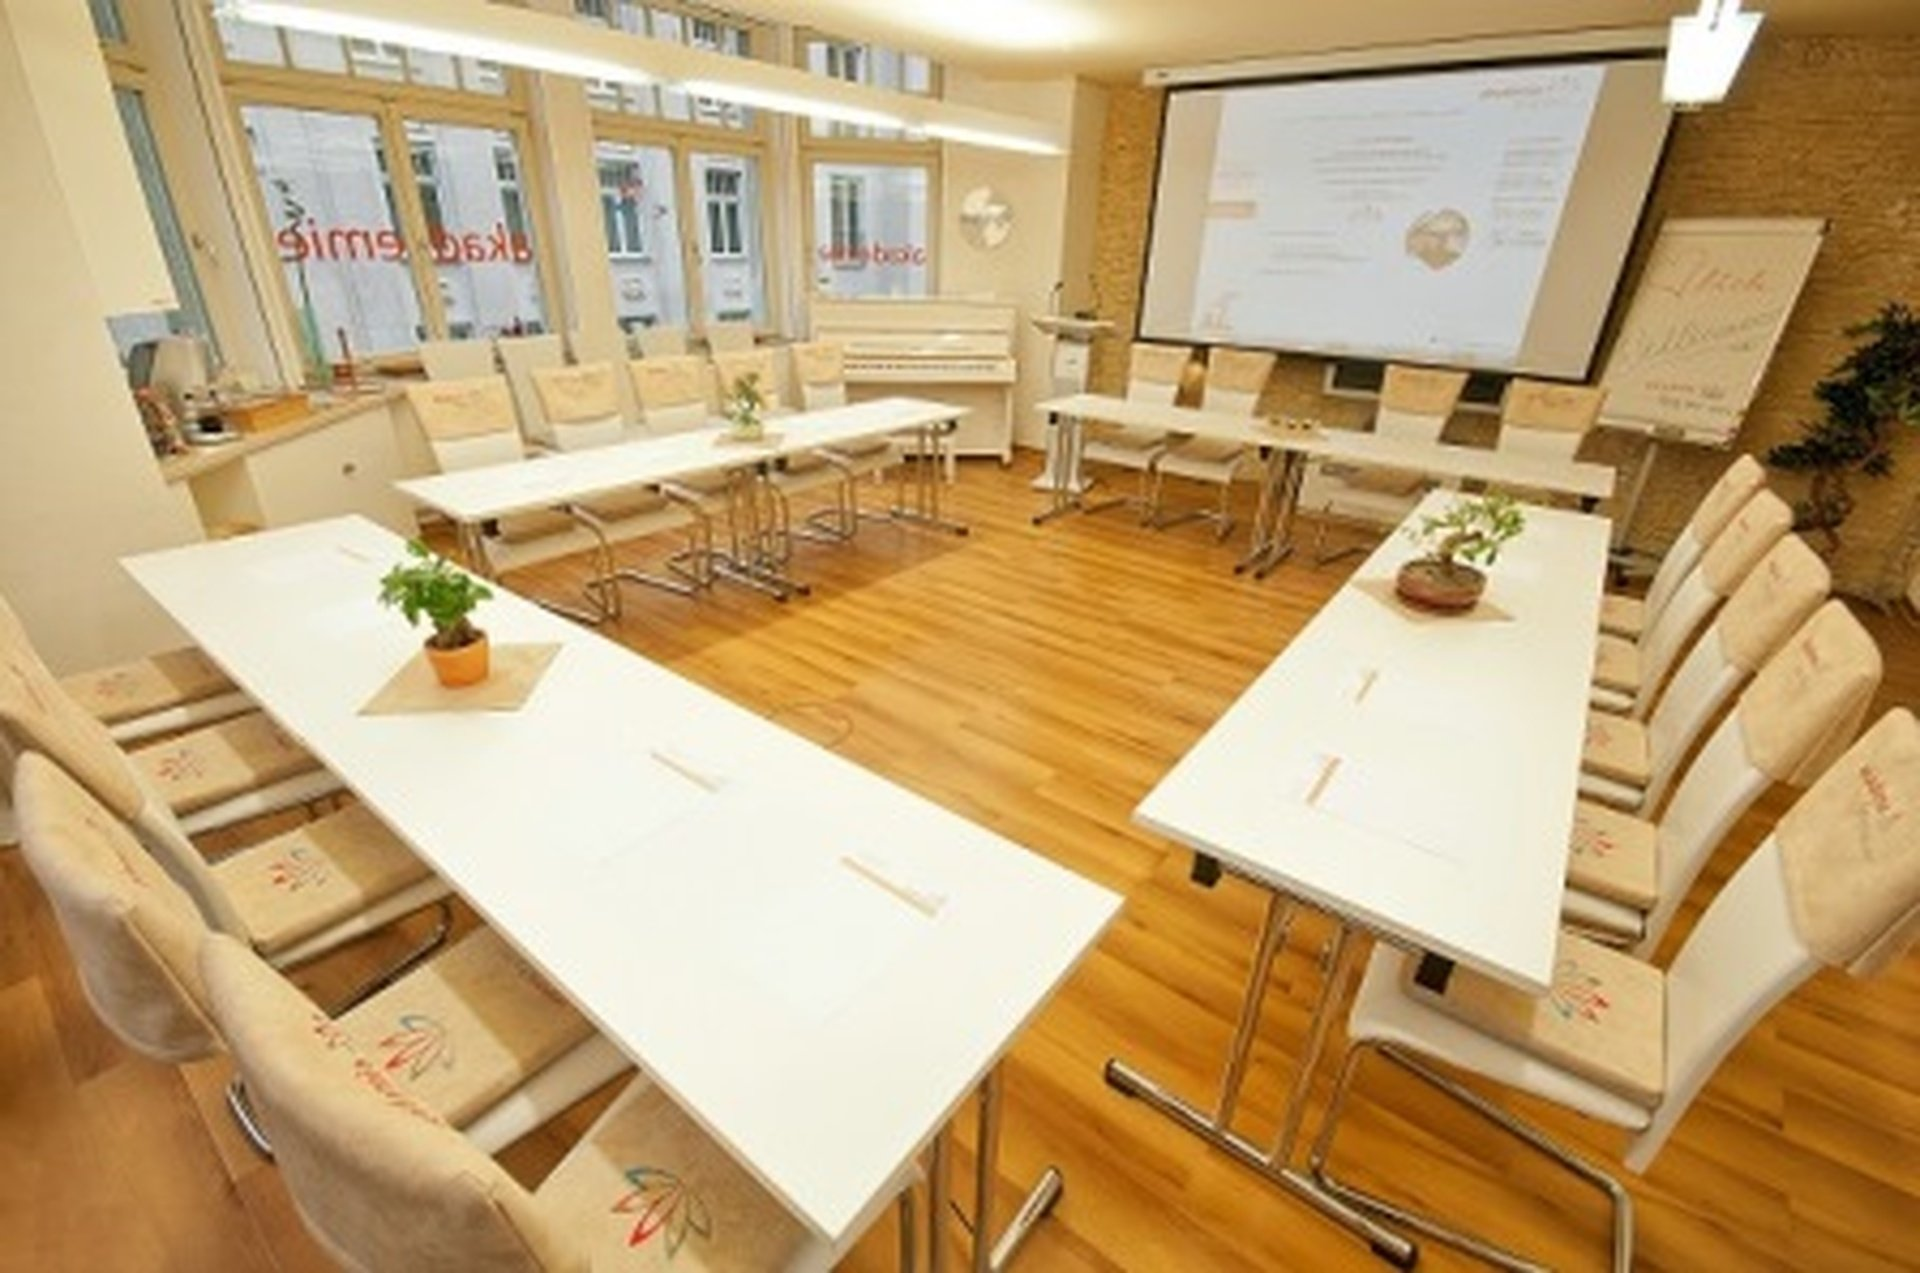 Leipzig Train station meeting rooms Meetingraum City Tagung Leipzig - Akademie image 0